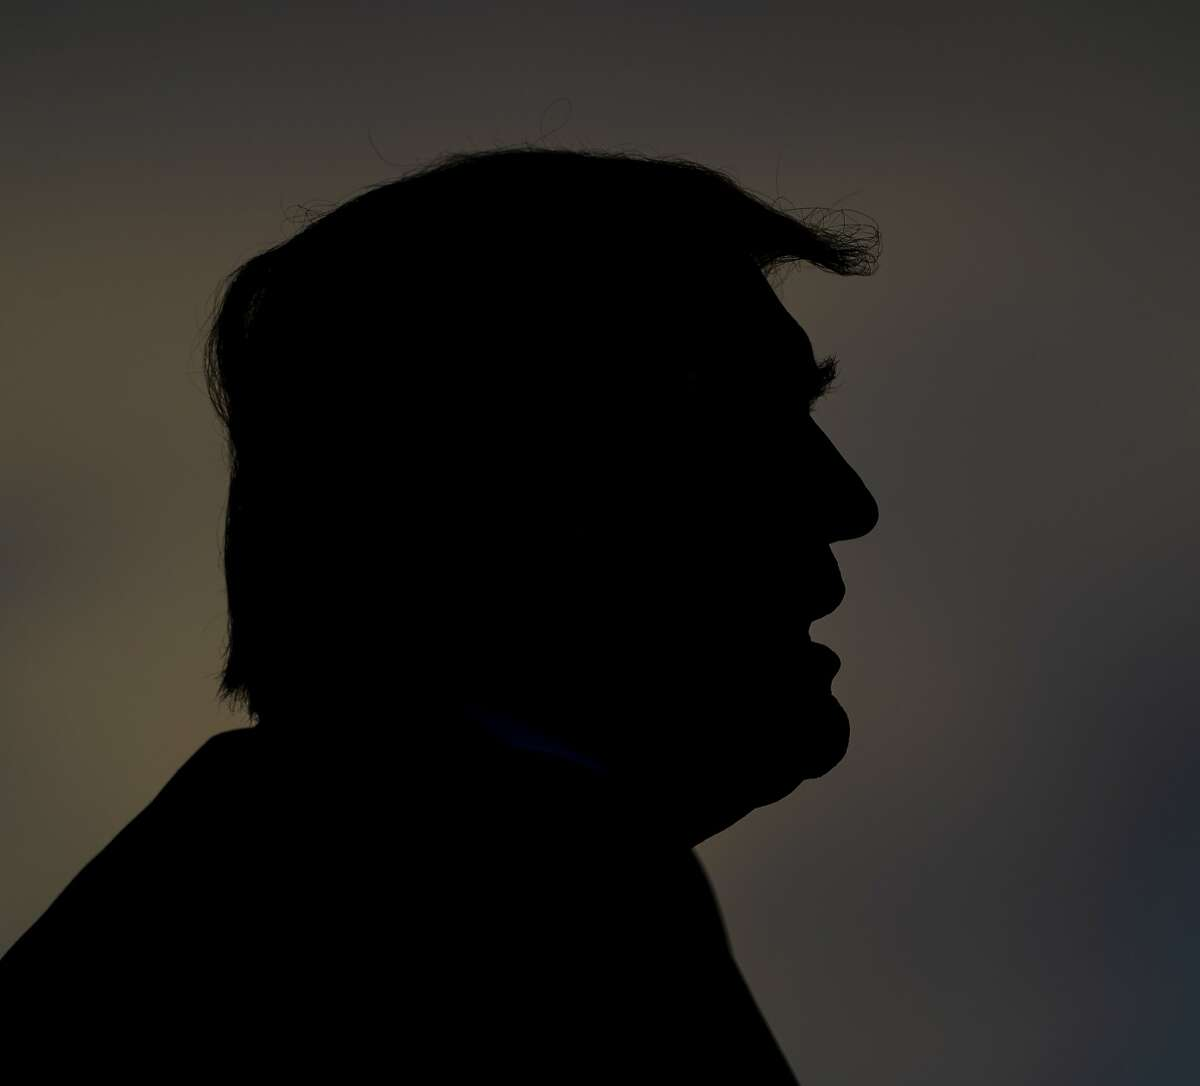 President Donald Trump during a campaign rally at Aaron Bessant Amphitheater in Panama City Beach, Fla., May 8, 2019. The president seems eager to force the hand of Democrats who are investigating him as if they were conducting an impeachment inquiry without actually calling it that. (Doug Mills/The New York Times)